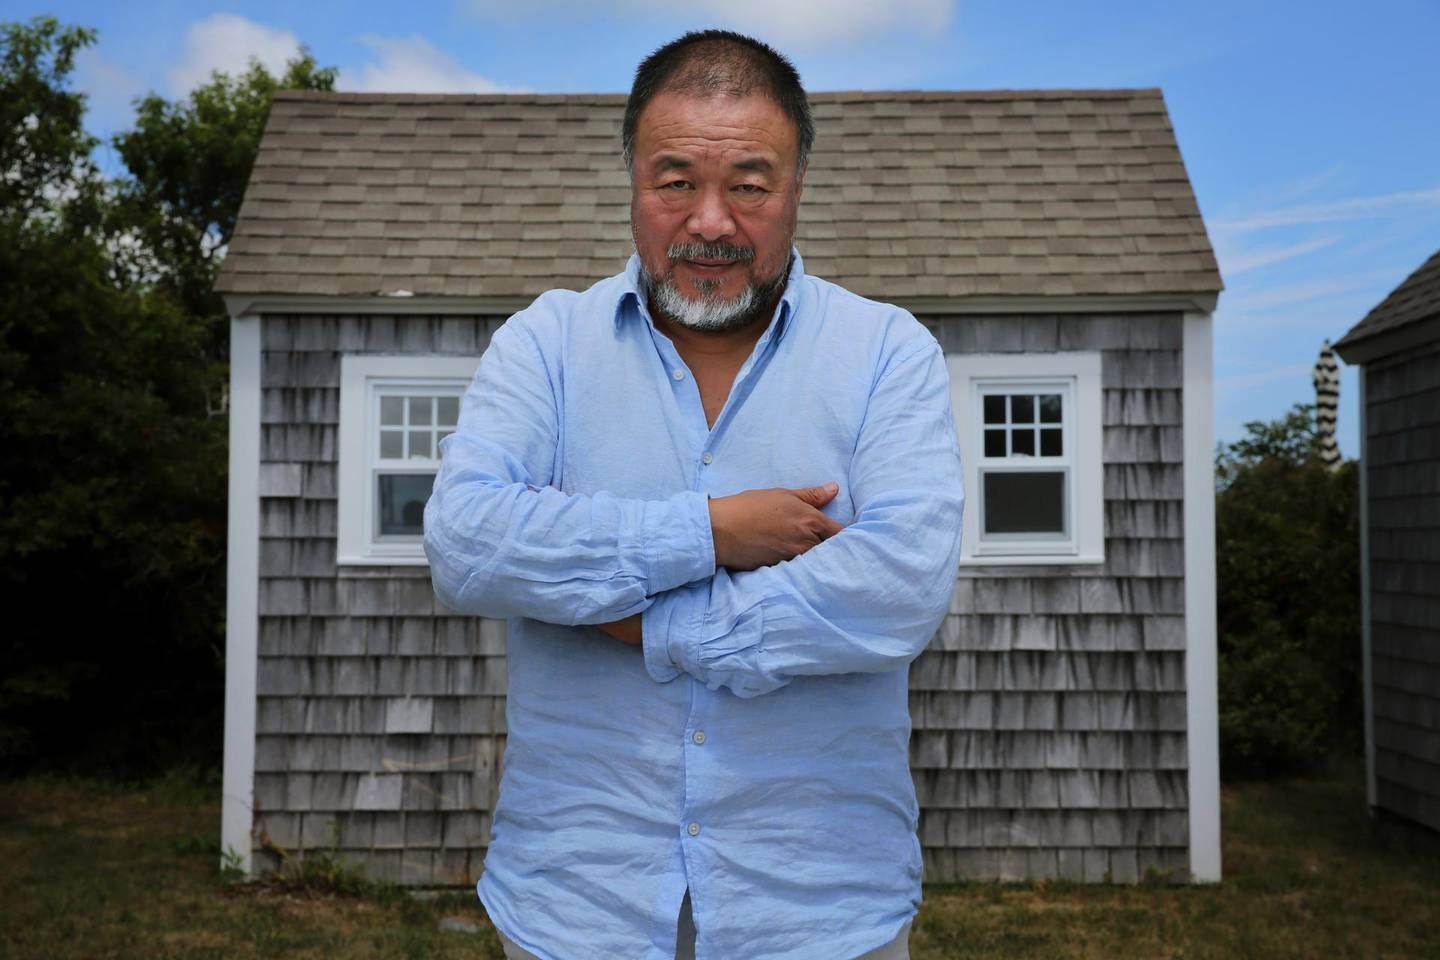 """TRURO, MA - JULY 21: Artist Ai Weiwei poses for a portrait while visiting Truro, MA on July 21, 2018. Weiwei was on Cape Cod to receive the Distinguished Artistic Achievement Award from the Fine Arts Work Center in Provincetown, where he is exhibiting his work """"Rebar and Case"""" through August 30. (Photo by Craig F. Walker/The Boston Globe via Getty Images)"""